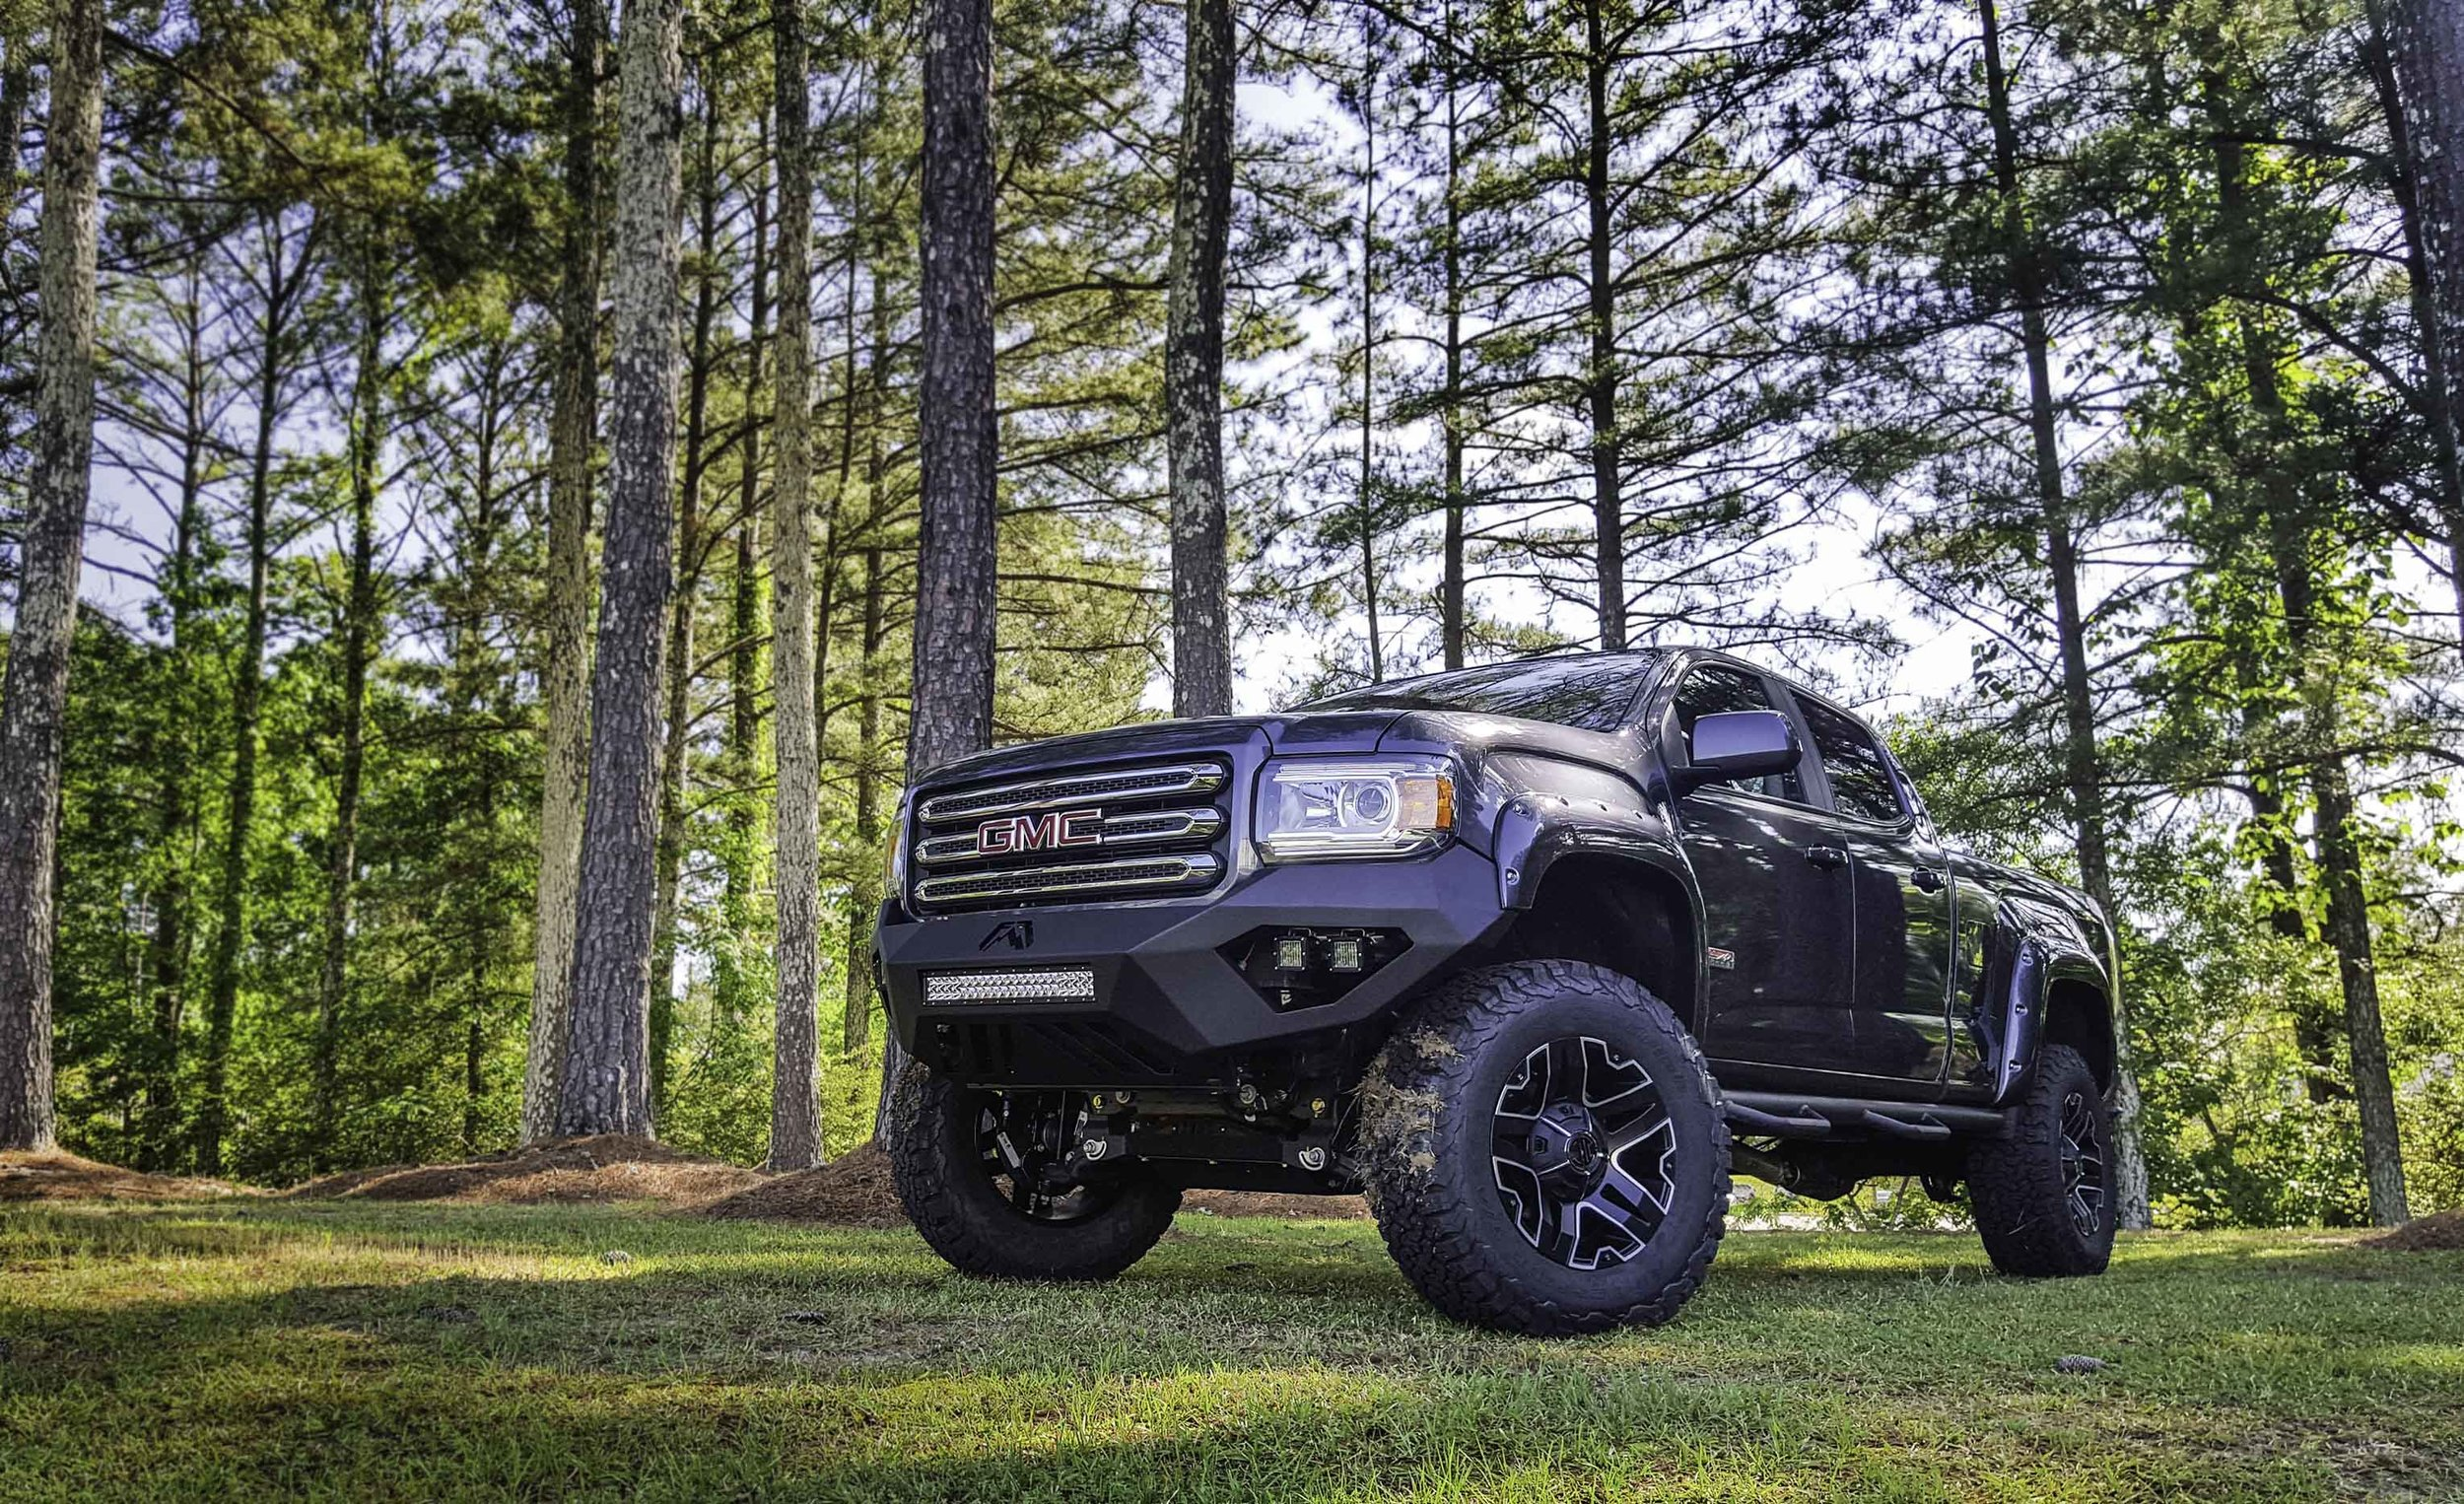 GMC Canyon Original Small.jpg